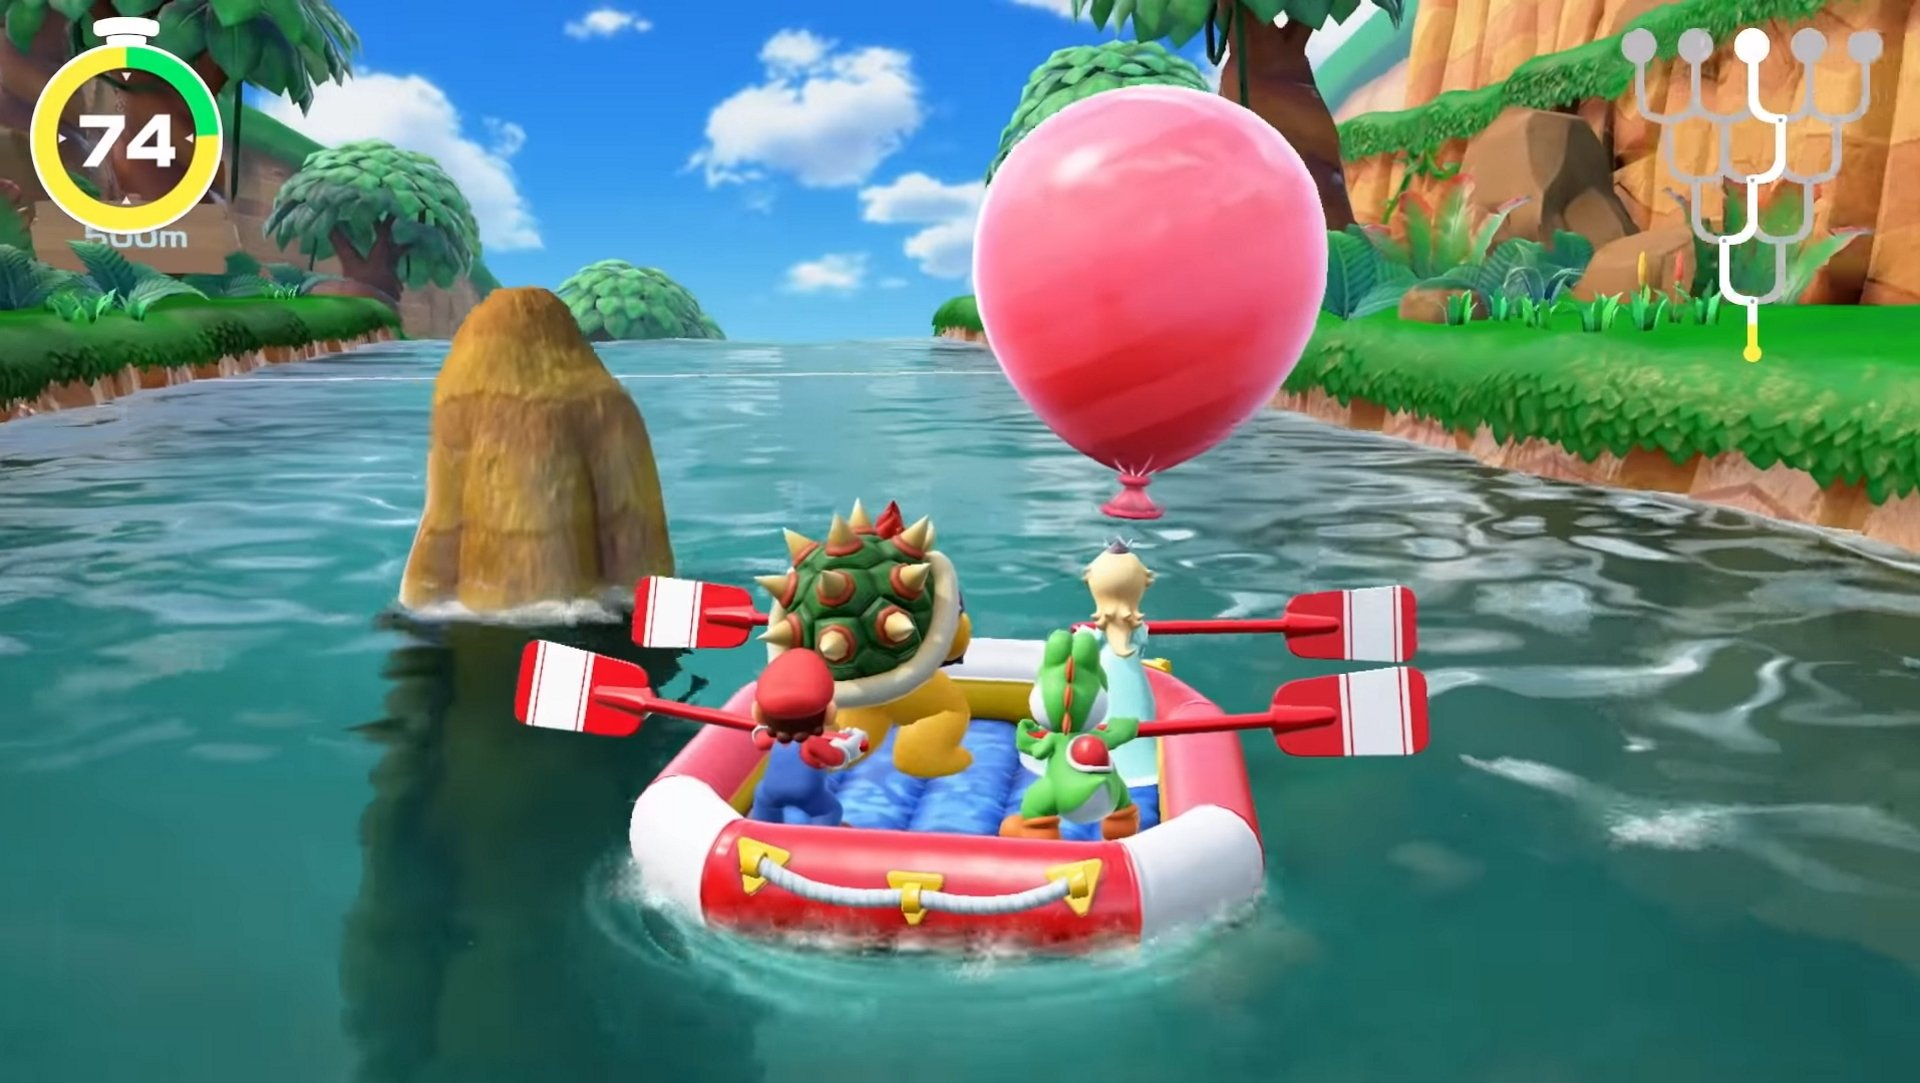 Don't you dare touch that paddle, Peach! © Nintendo